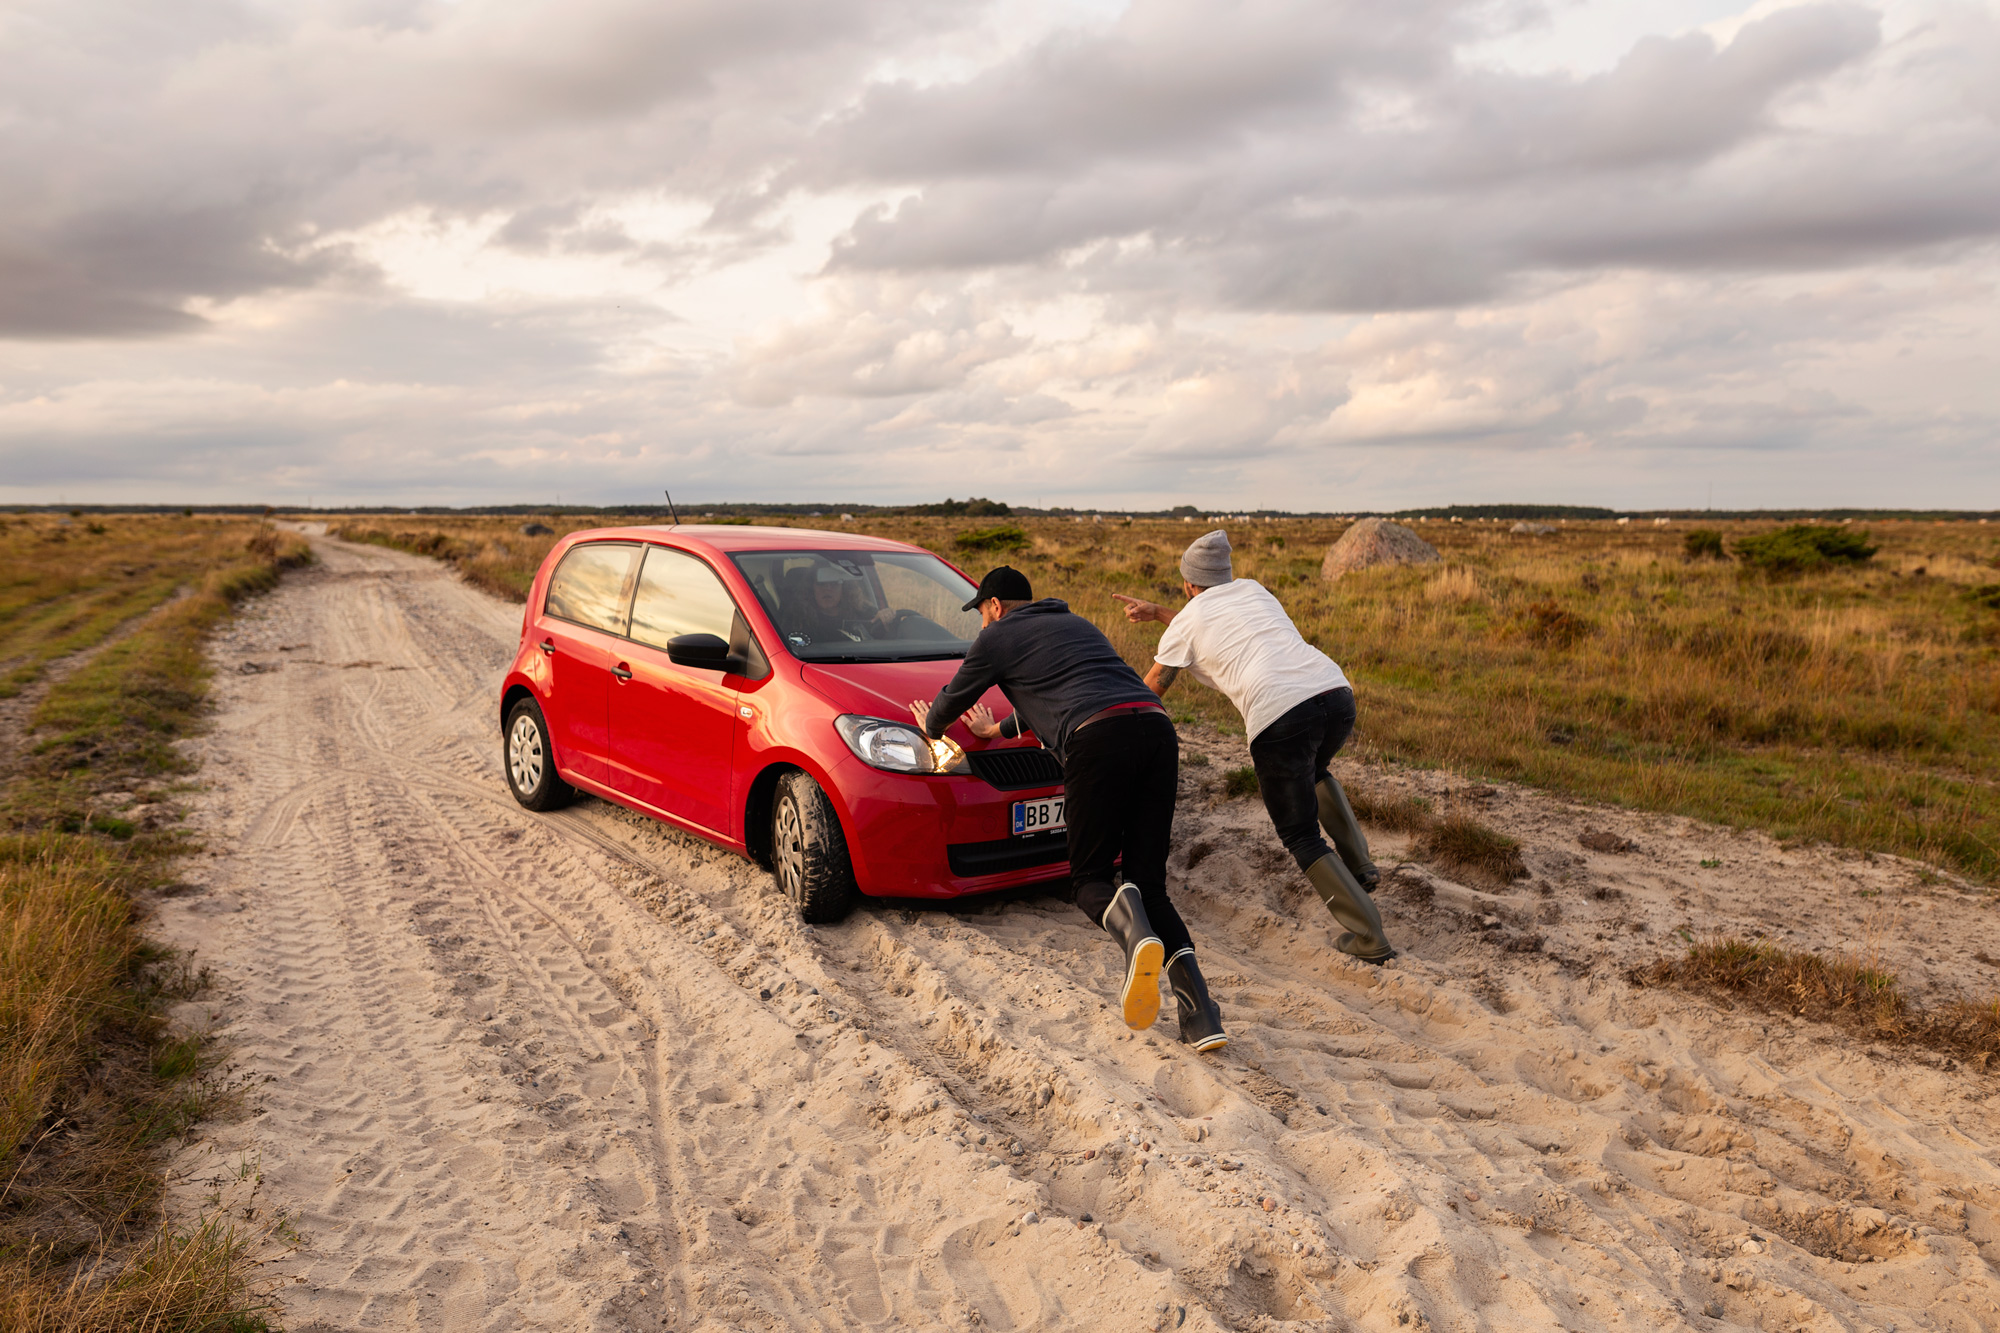 Sand road plus small car..what could go wrong?